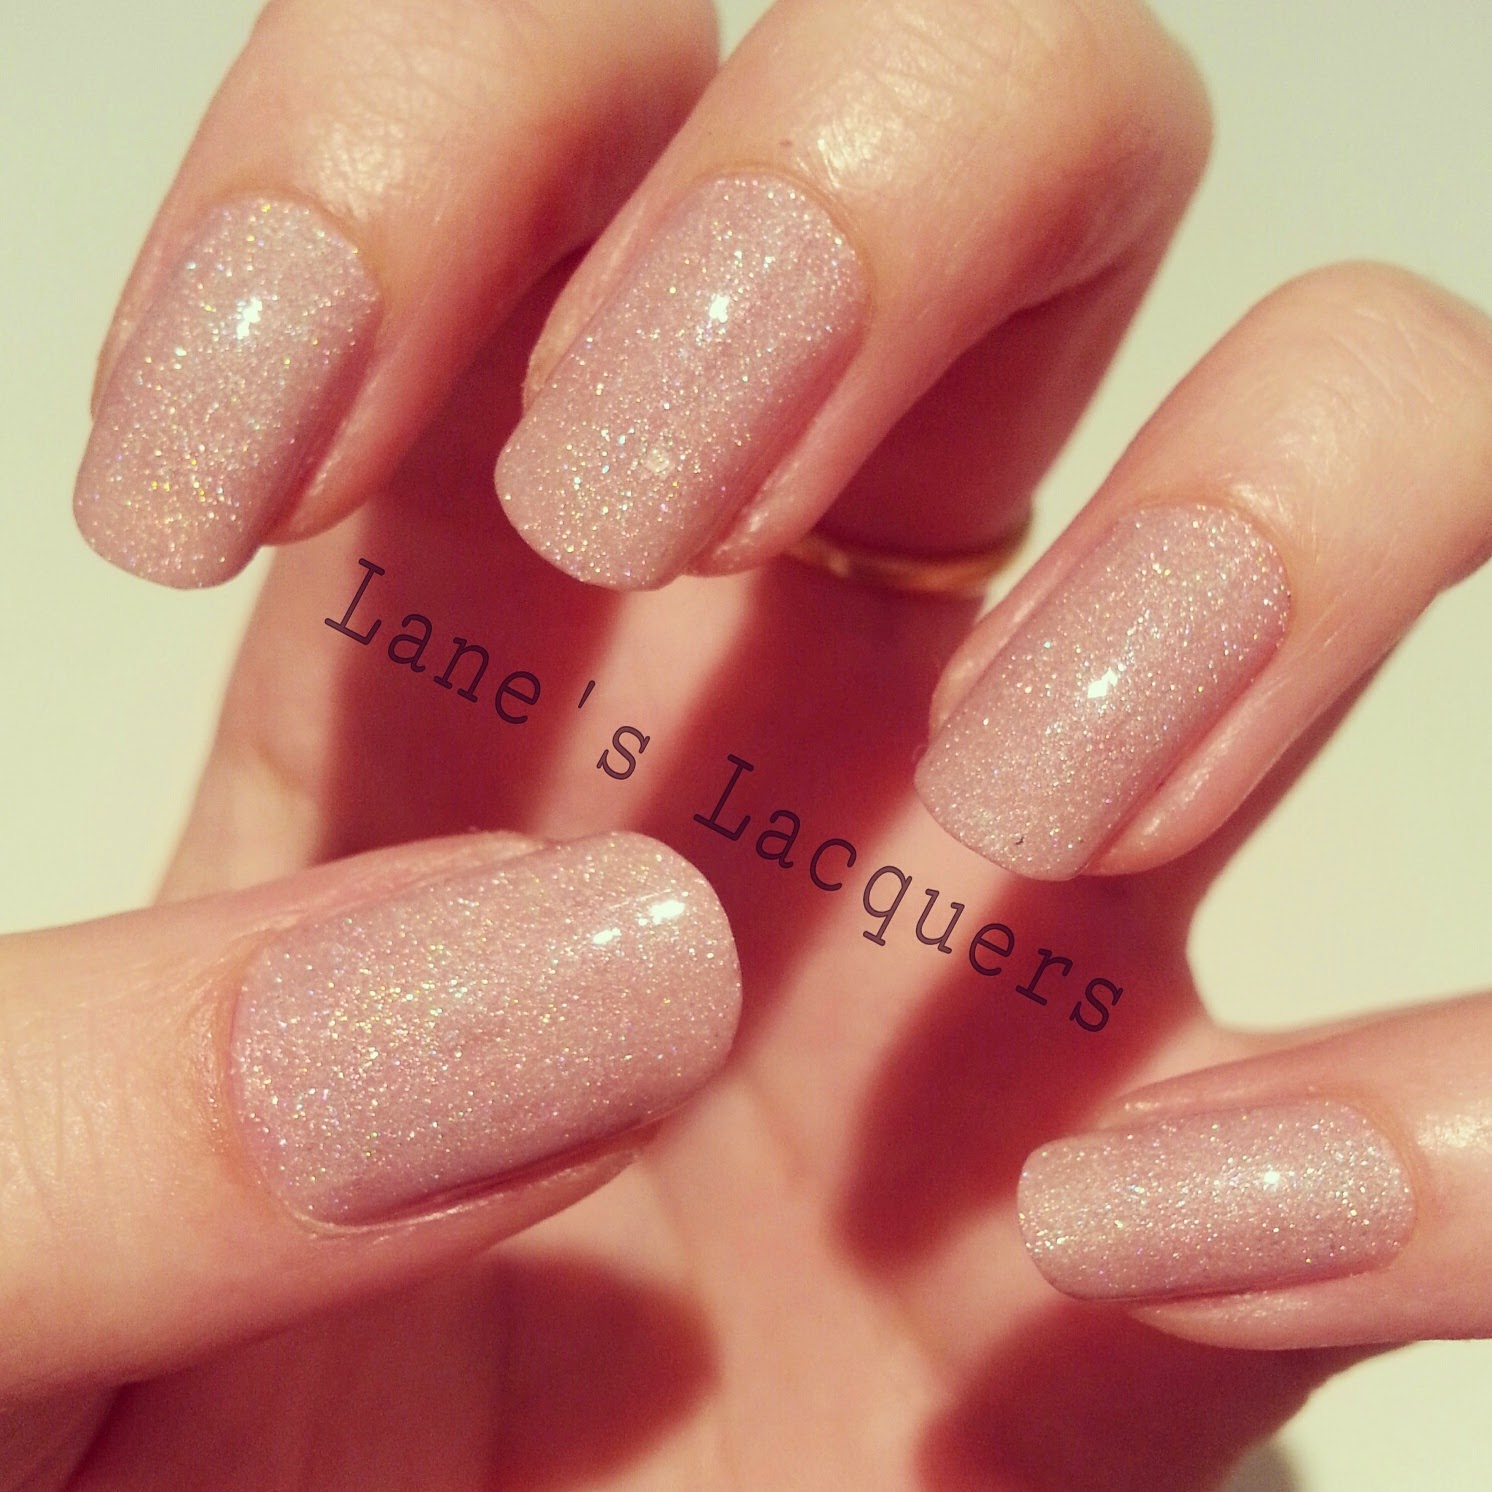 new-picture-polish-grace-swatch-manicure